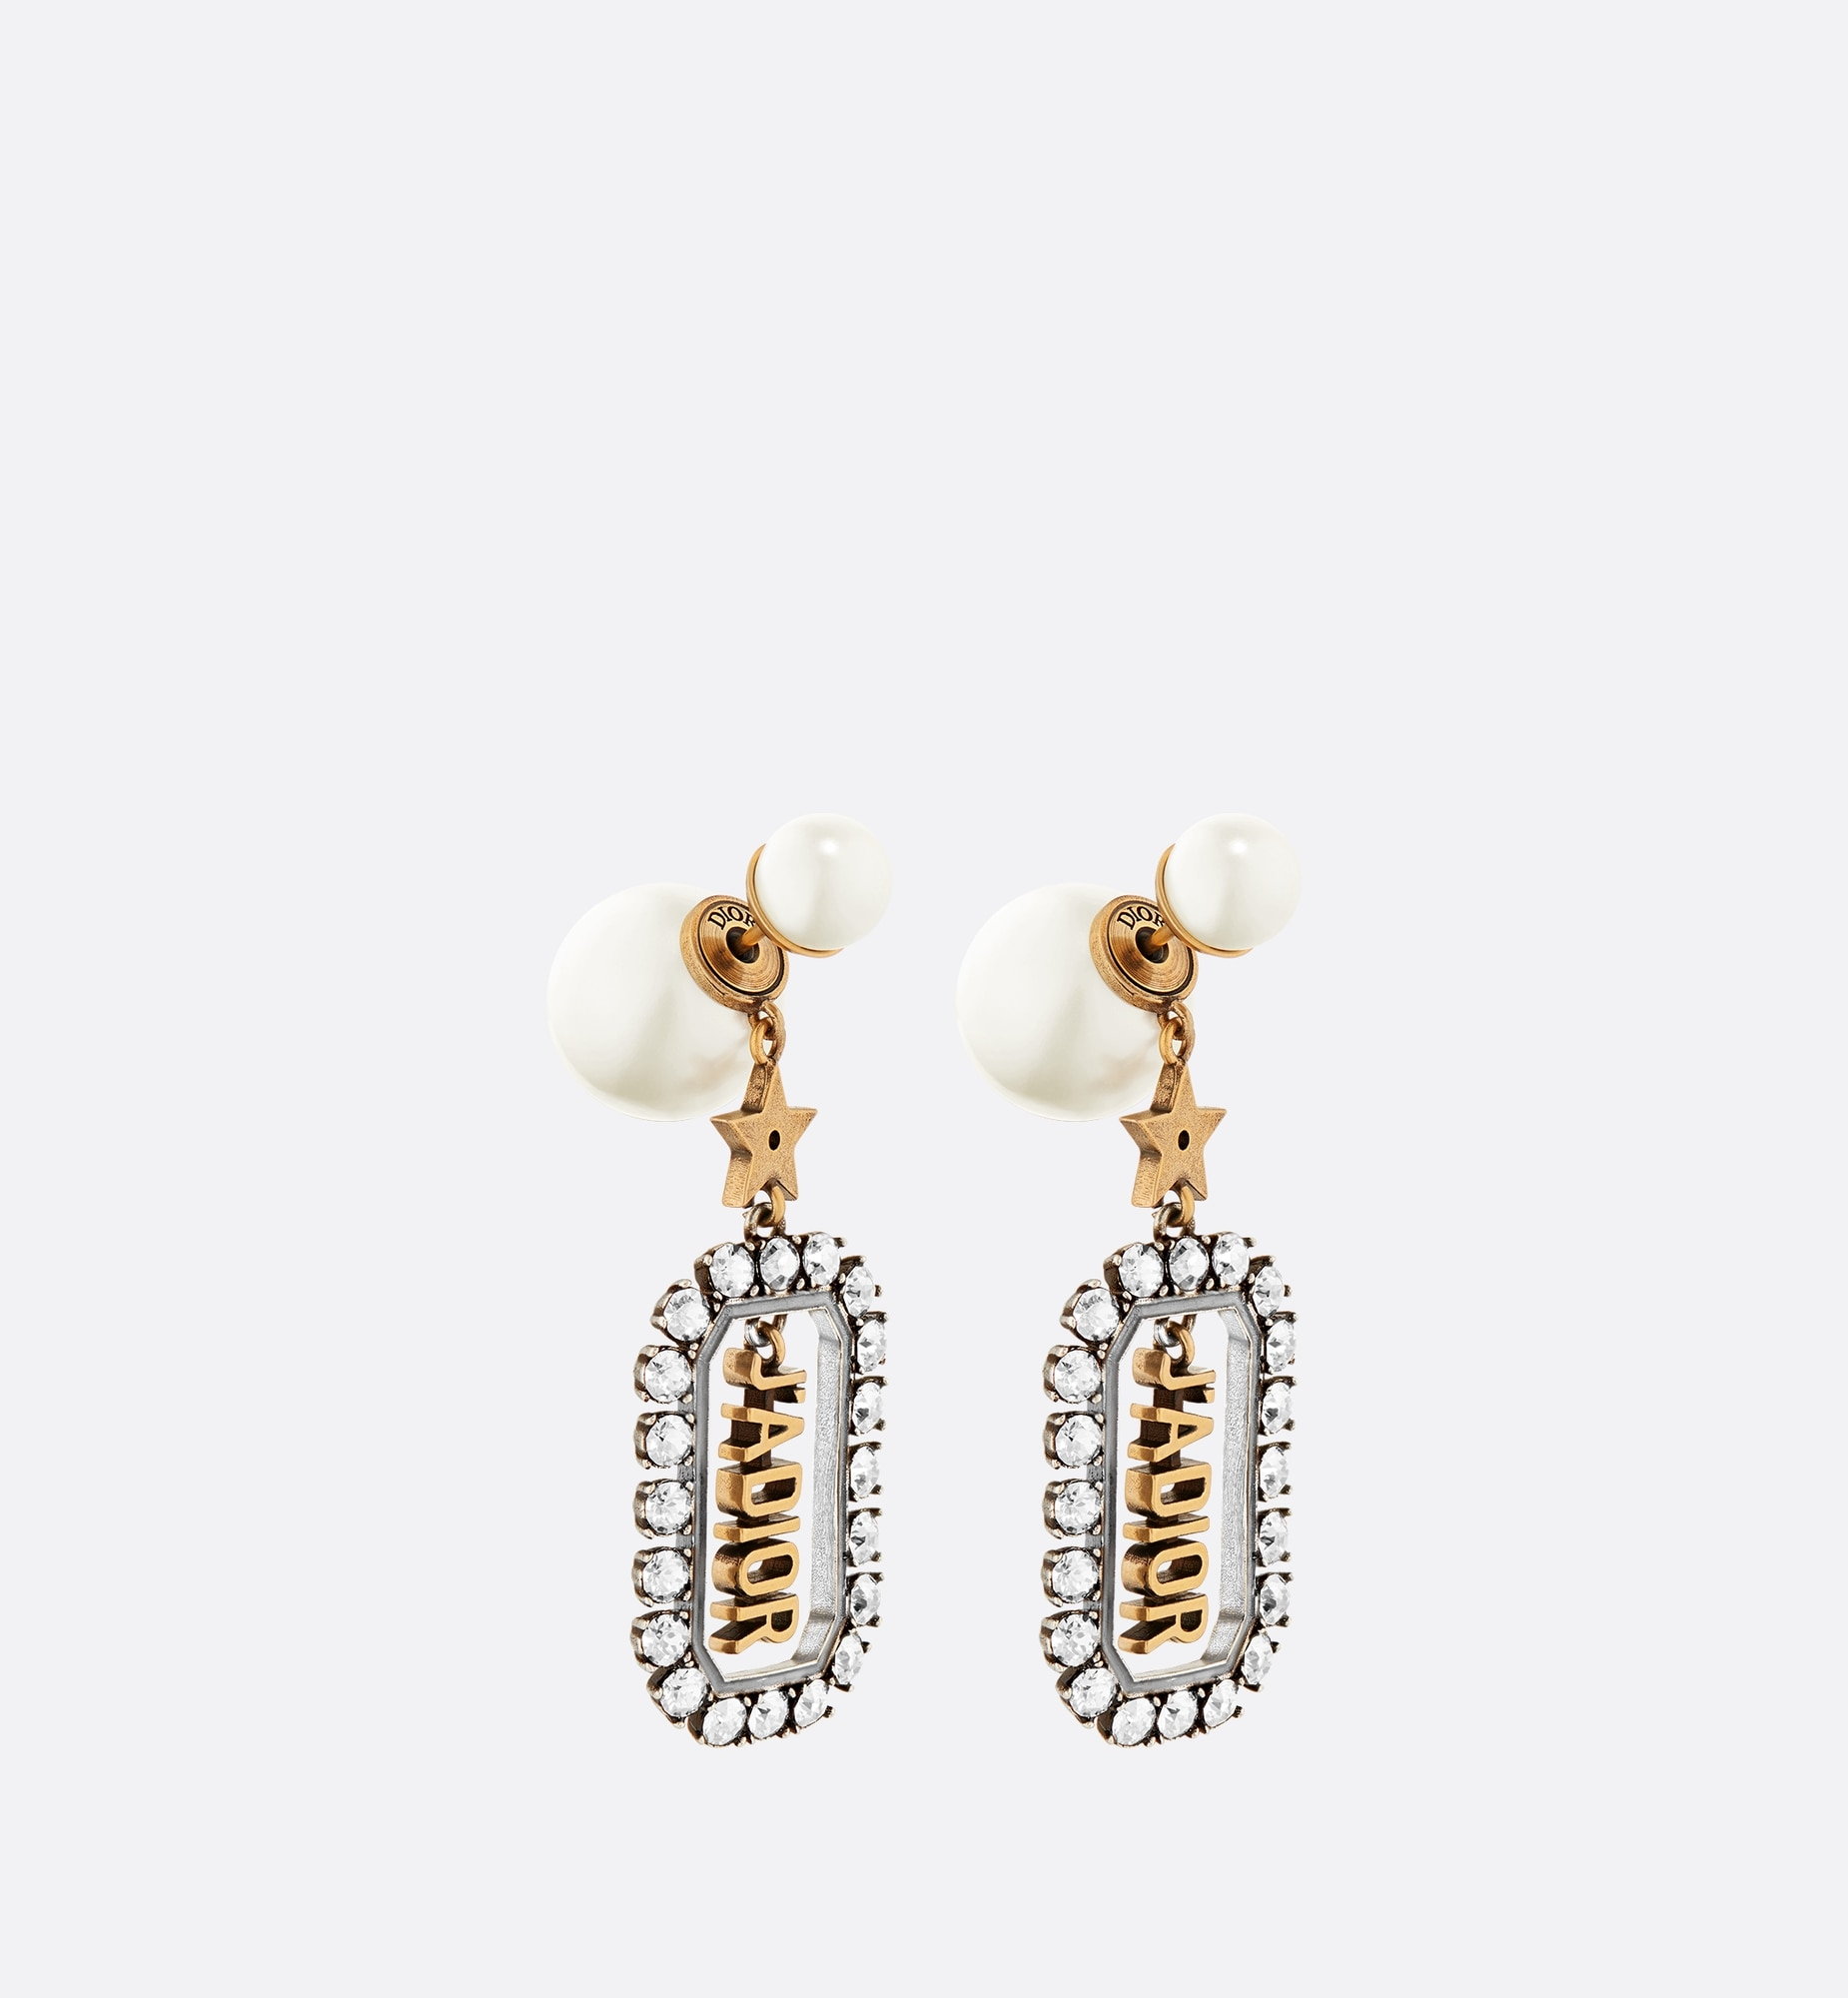 dior tribales earrings | Dior Three quarter closed view